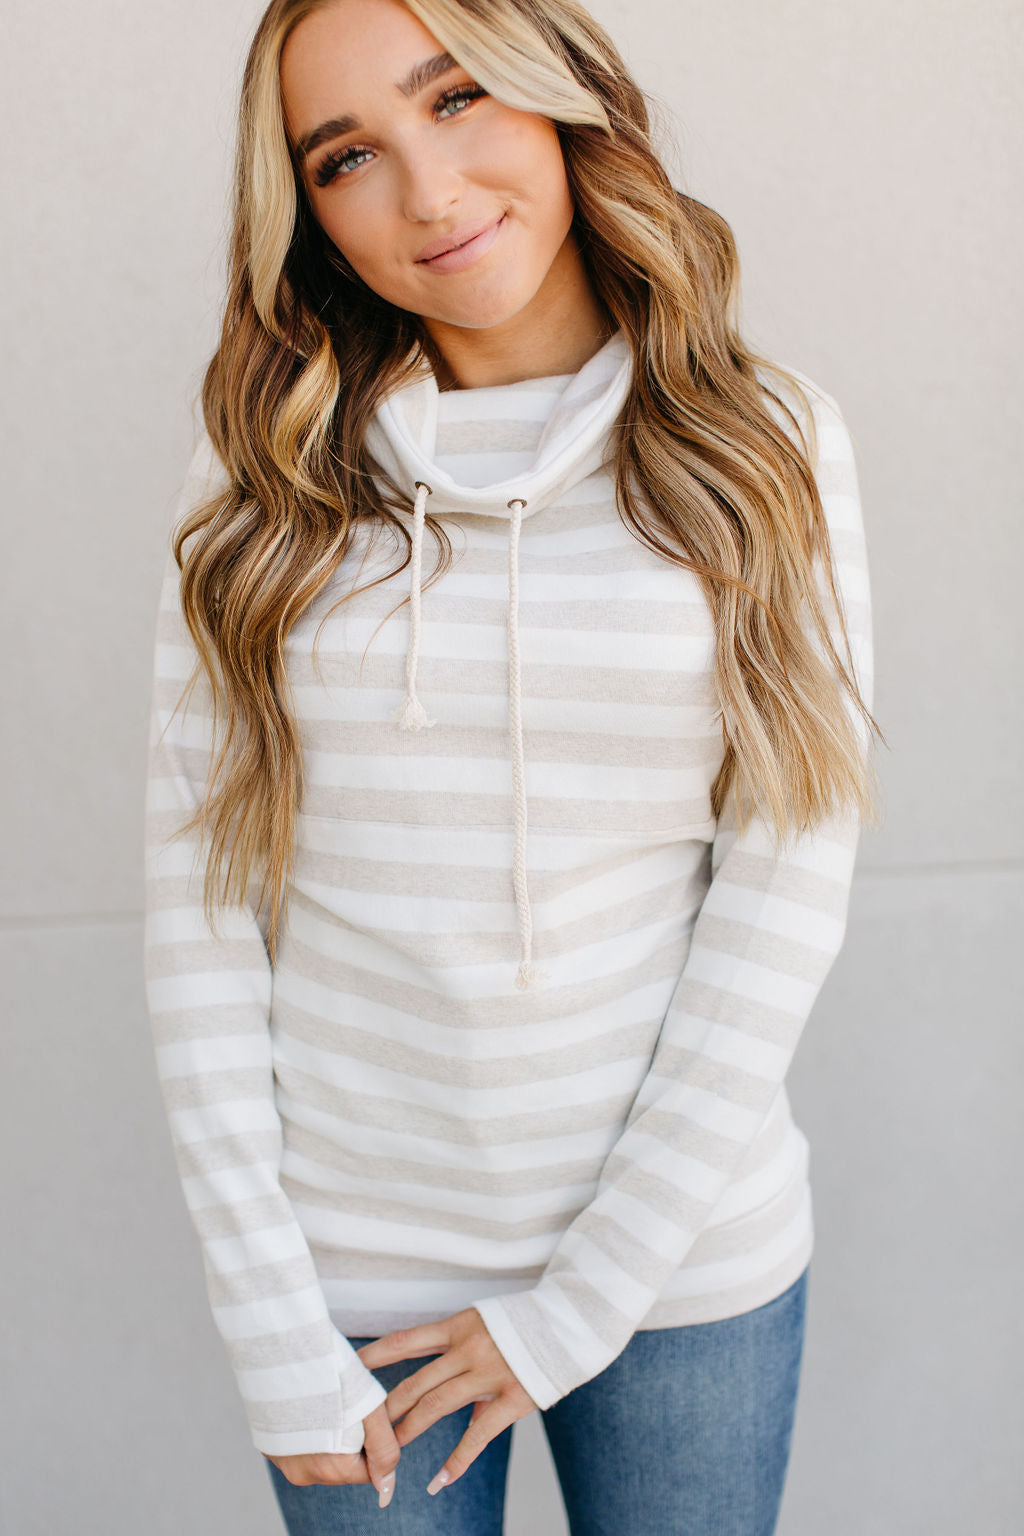 CowlNeck Sweatshirt - Naturally Needed